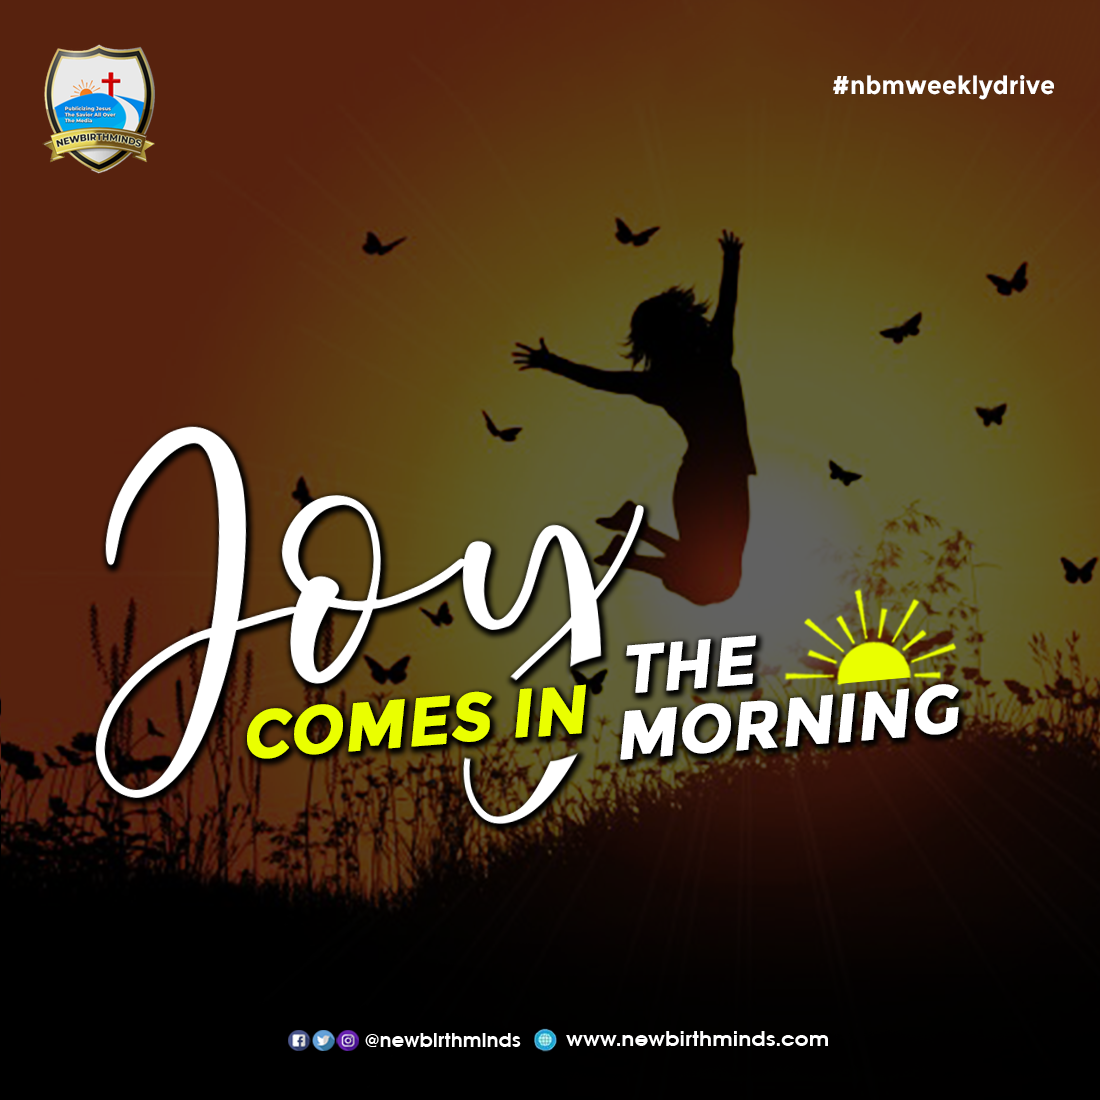 JOY COMES IN THE MORNING – NBM Weekly Drive